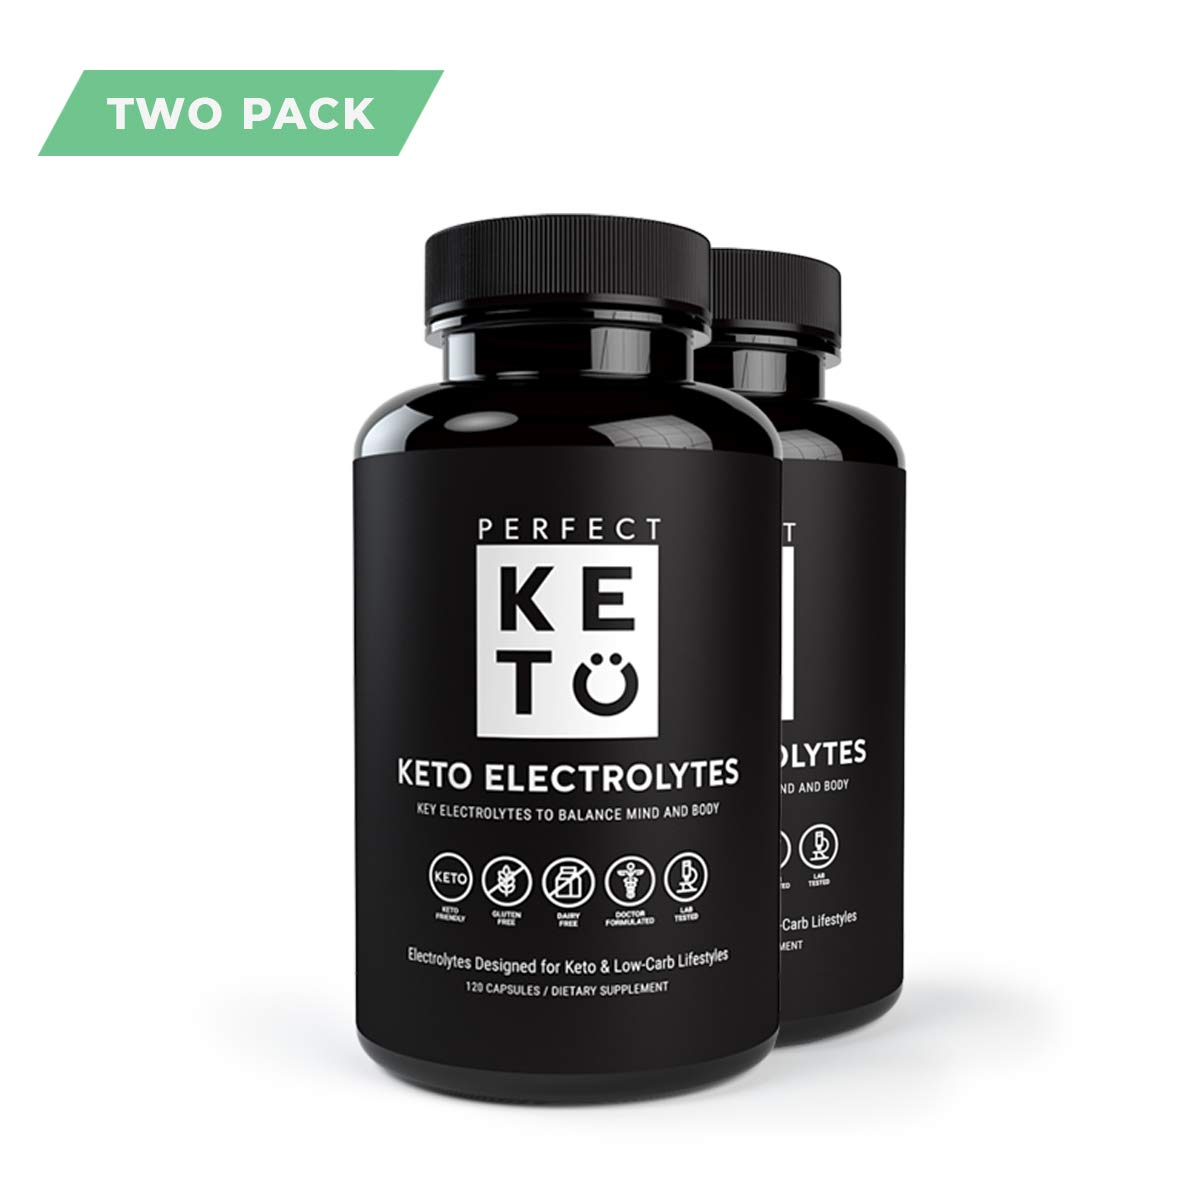 Perfect Keto Flu Electrolyte Supplement: Electrolytes Capsules for Low Carb Diet or Ketogenic Diet to Balance Mind & Body. Energy Supplements, Sodium, Potassium, Magnesium (2 Bottles, 240 Count) by Perfect Keto